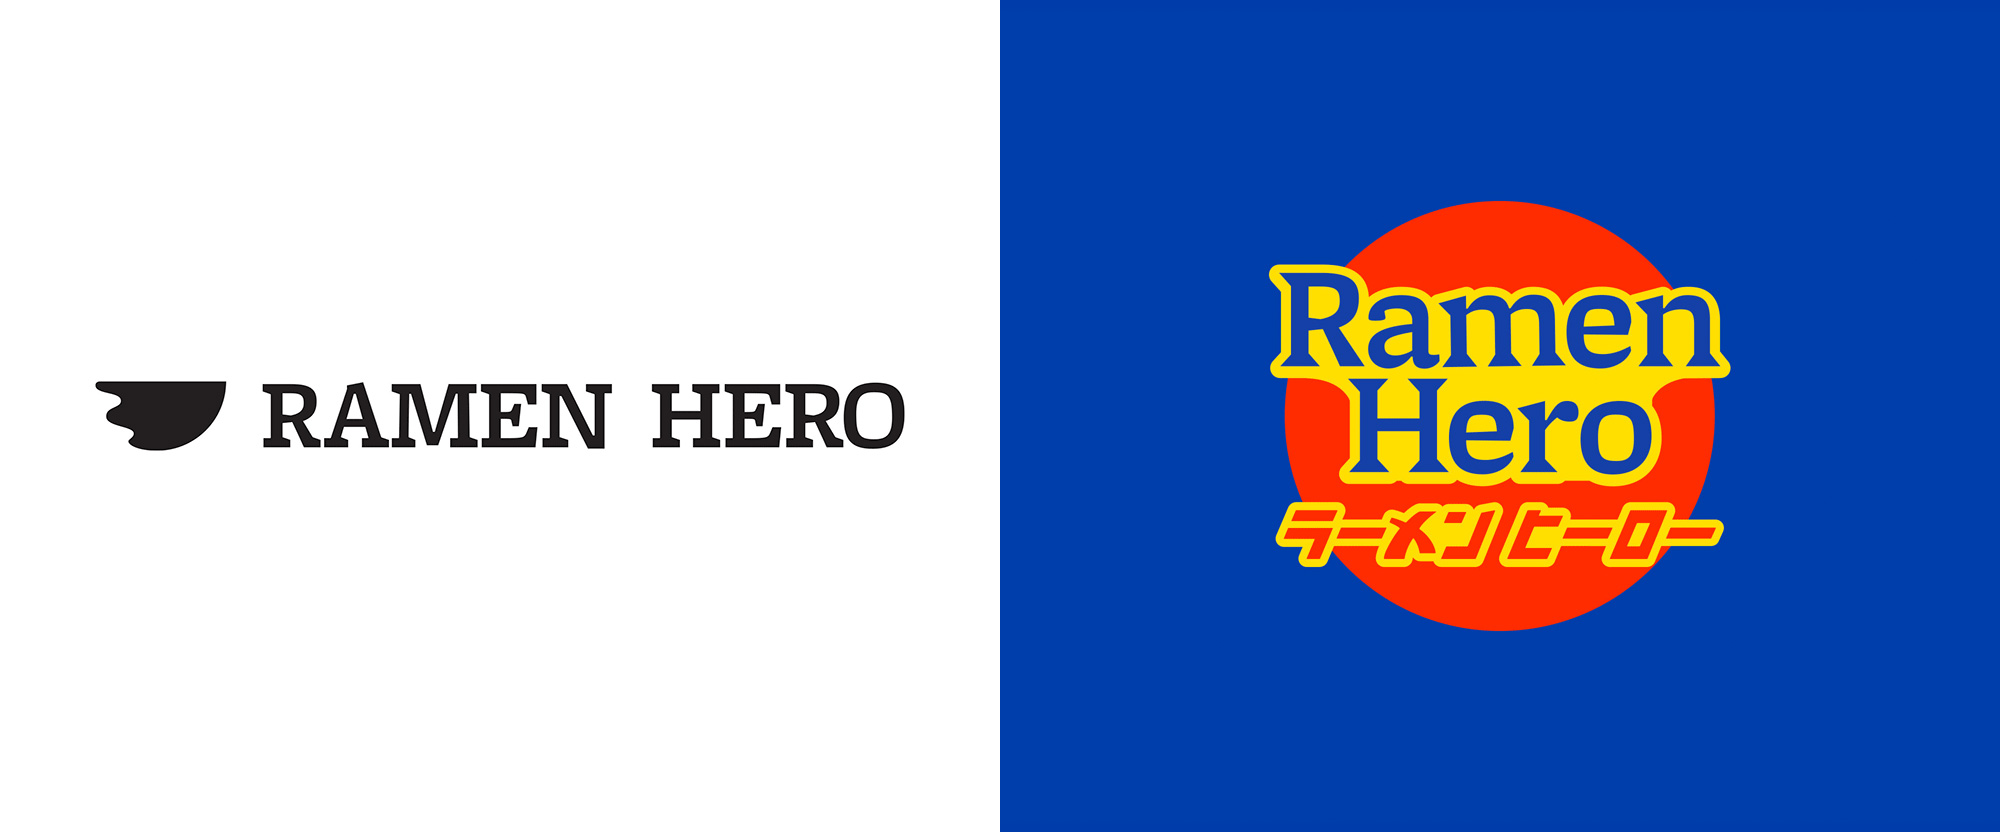 New Logo, Identity, and Awesome Cowboy for Ramen Hero by Iyashi